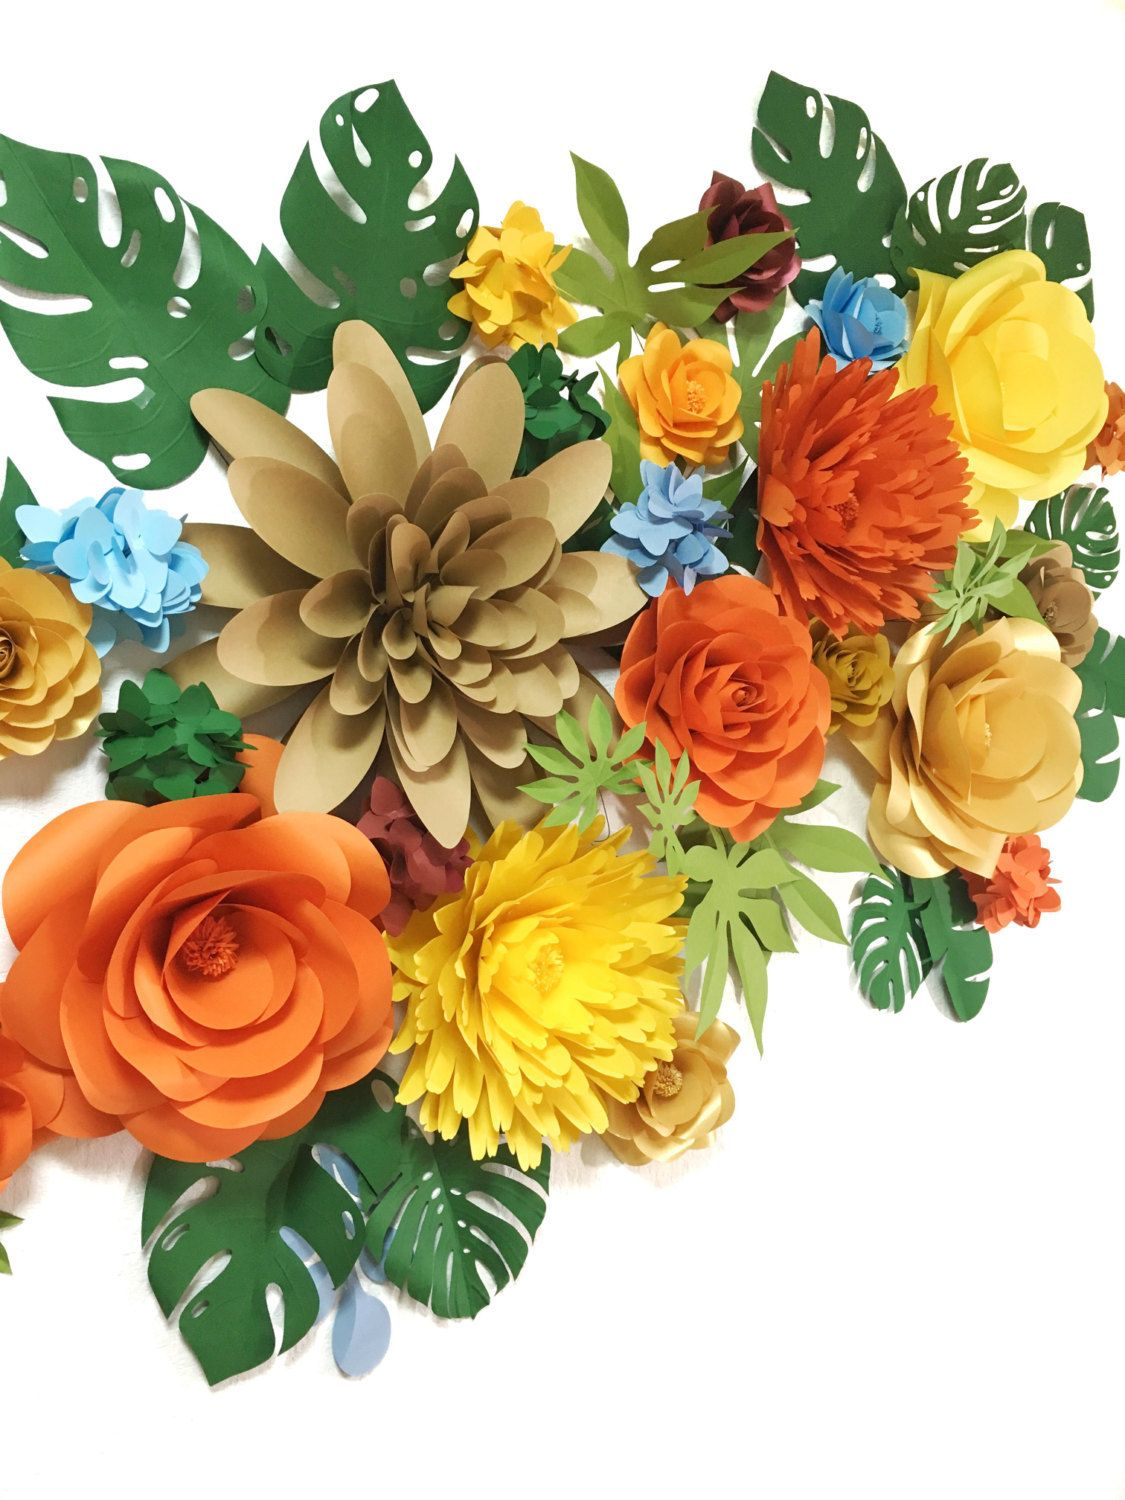 Paper Flowers By Mio Gallery On Etsy See Our Paper Art Tag Follow